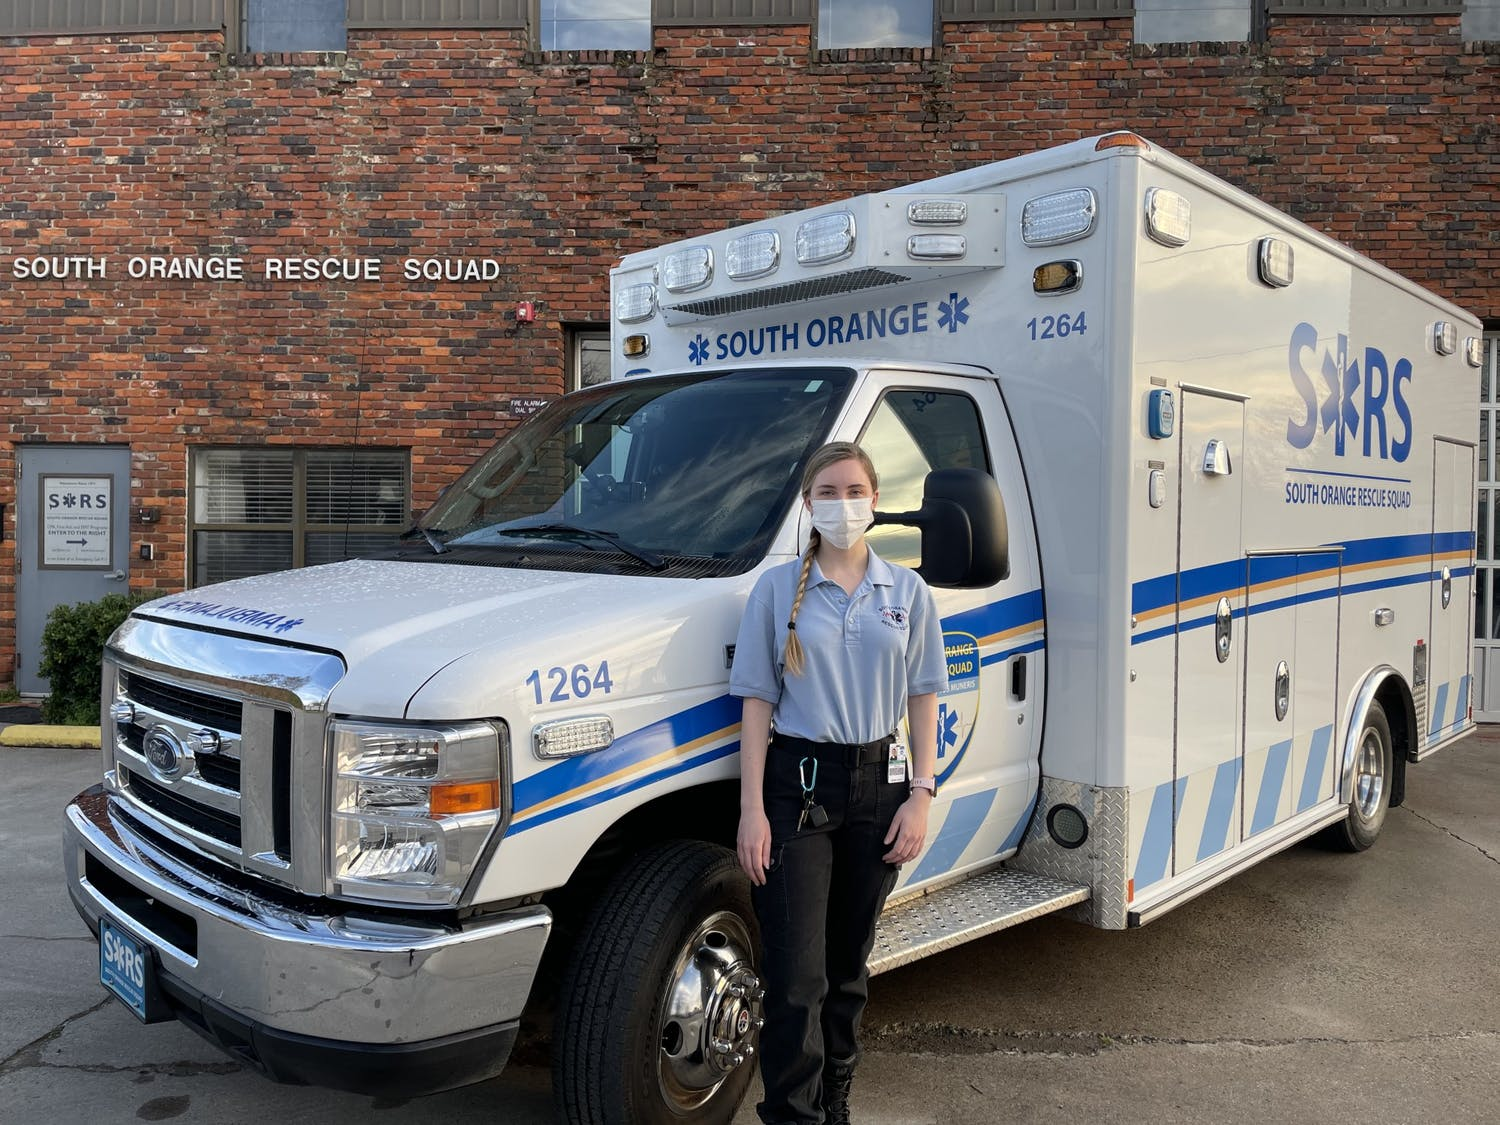 """Senior biology major and SORS volunteer Olivia Nichols poses in front of the South Orange Rescue Squad ambulance. Nichols said of SORS, """"I just feel a community with them. They're very supportive."""" Photo courtesy of Spencer Lindgren/South Orange Rescue Squad"""